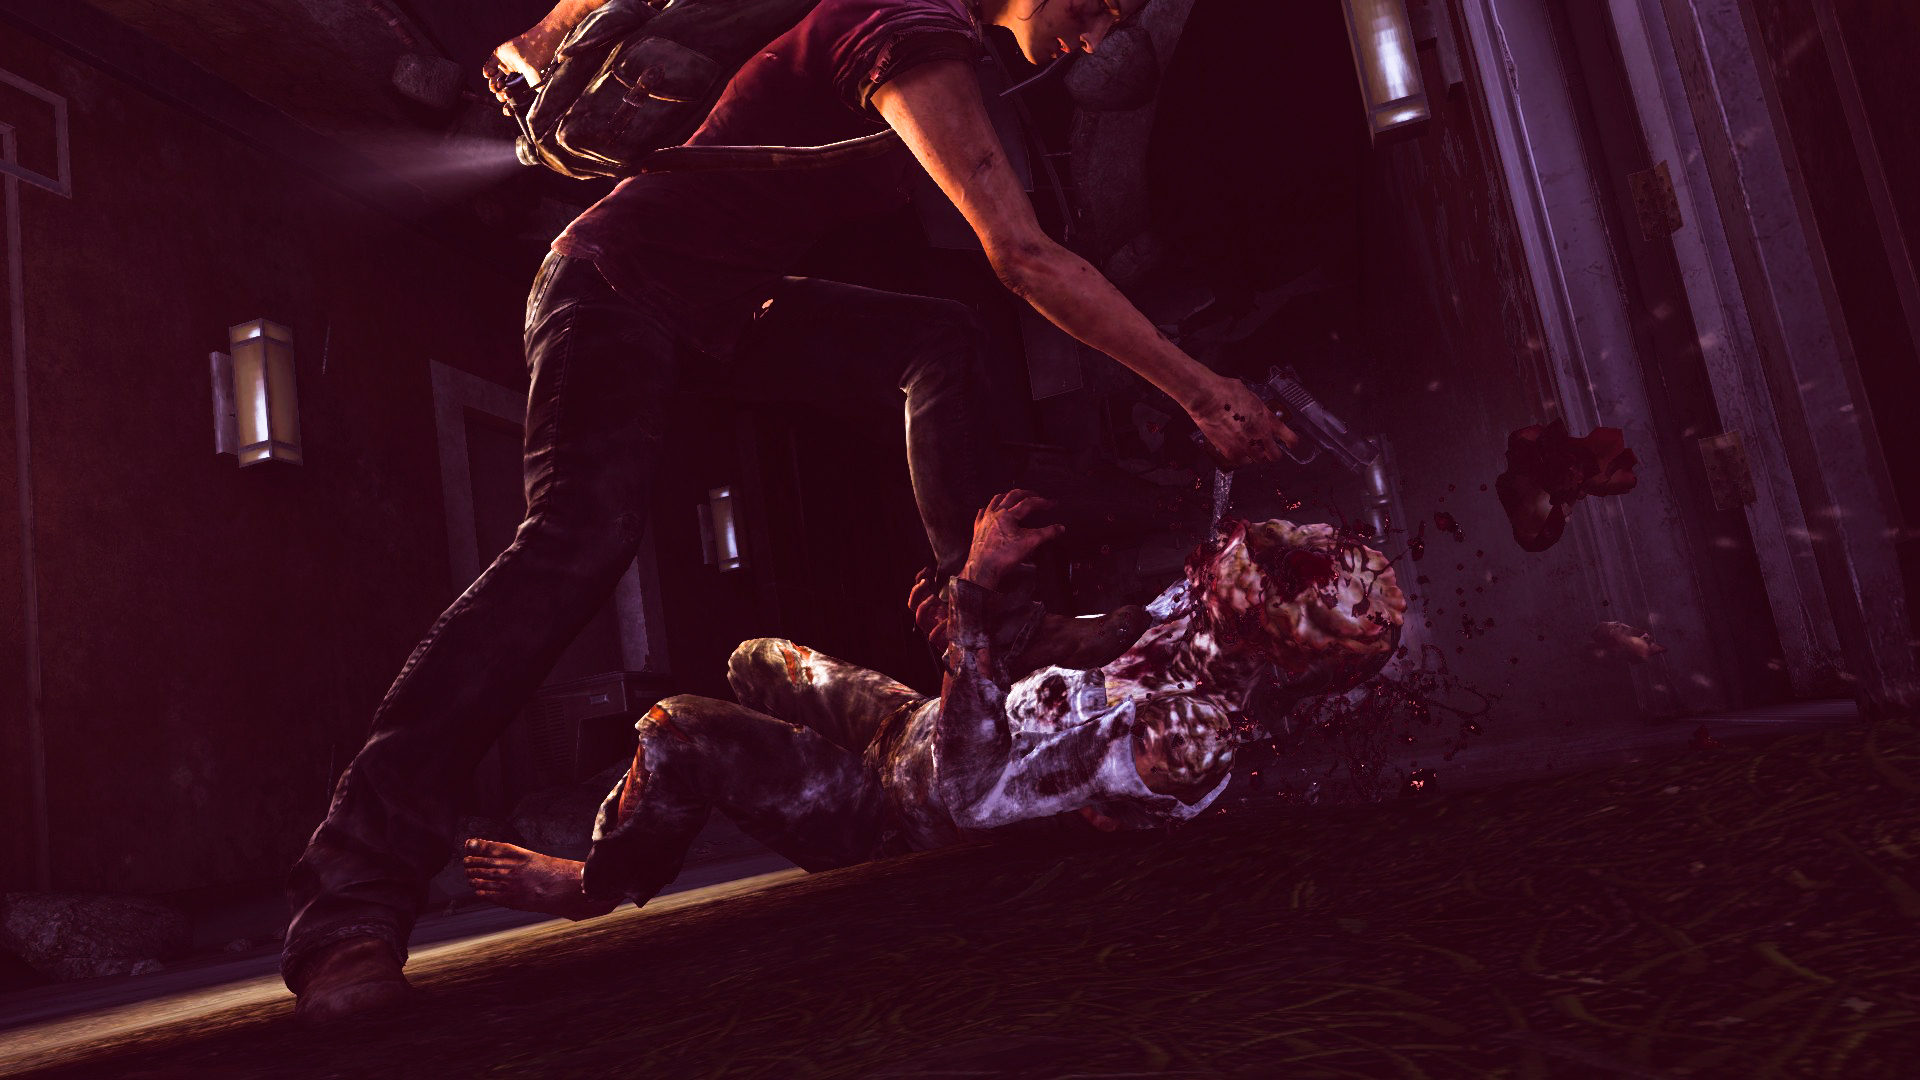 The Last Of Us Wallpapers, Pictures, Images